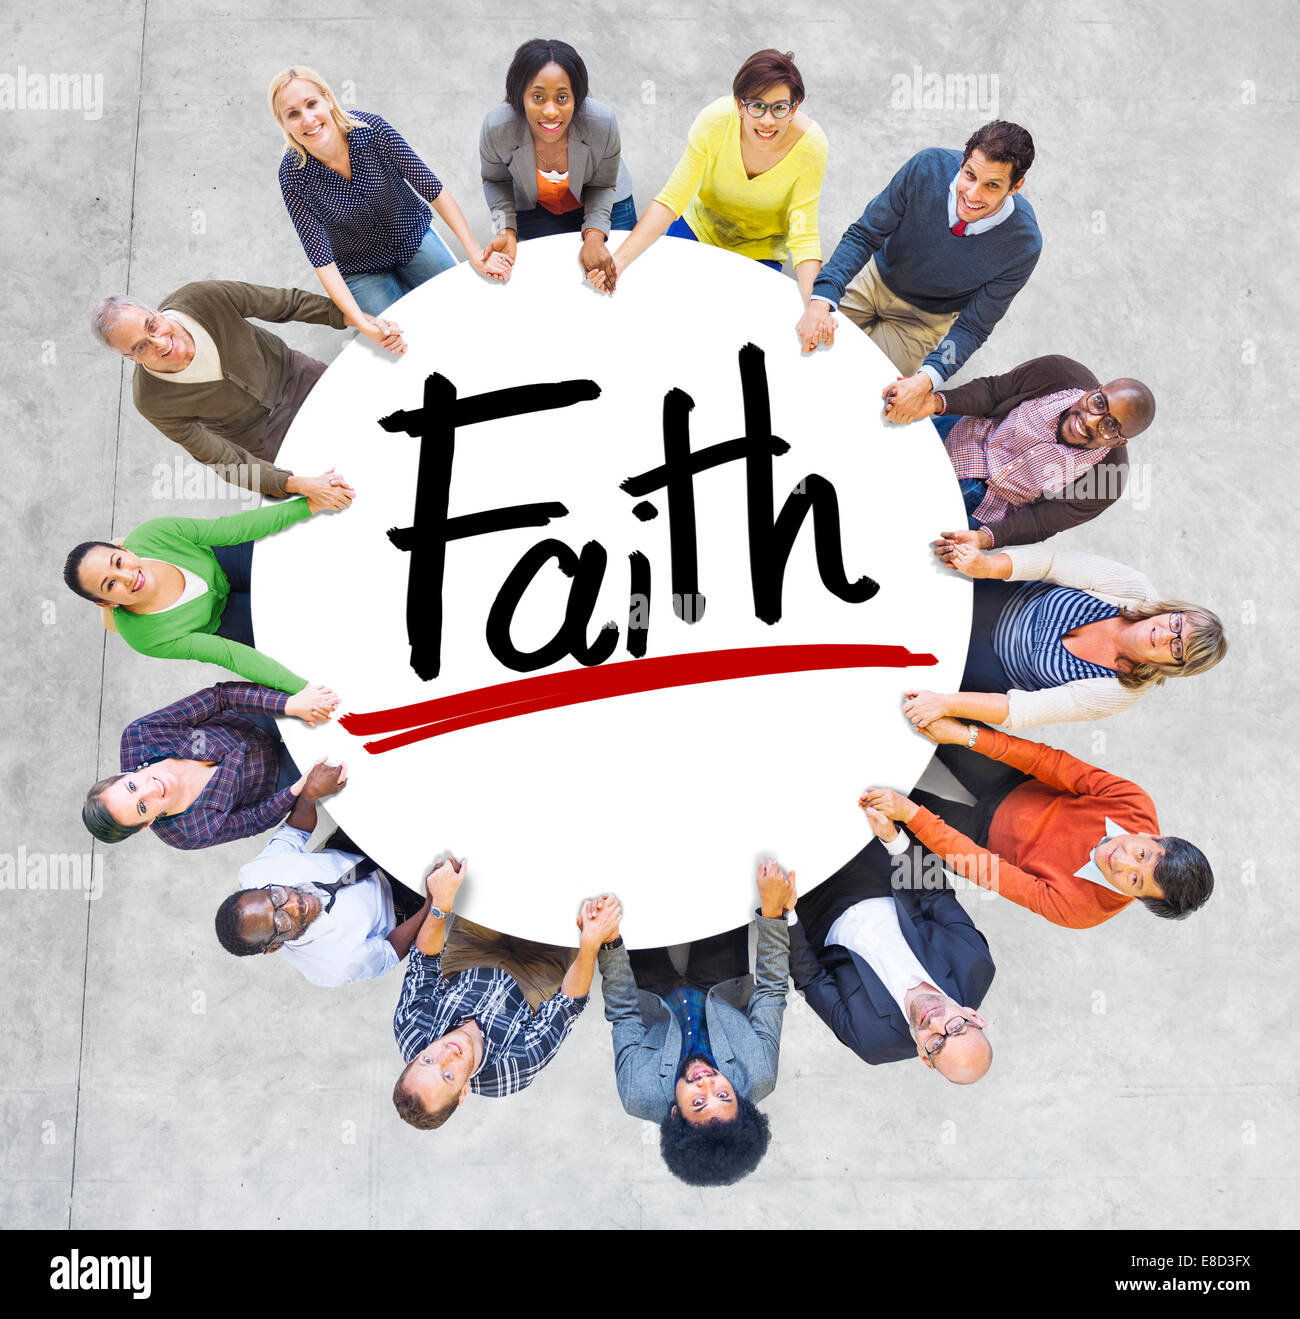 Diverse People Holding Hands Faith Concept - Stock Image